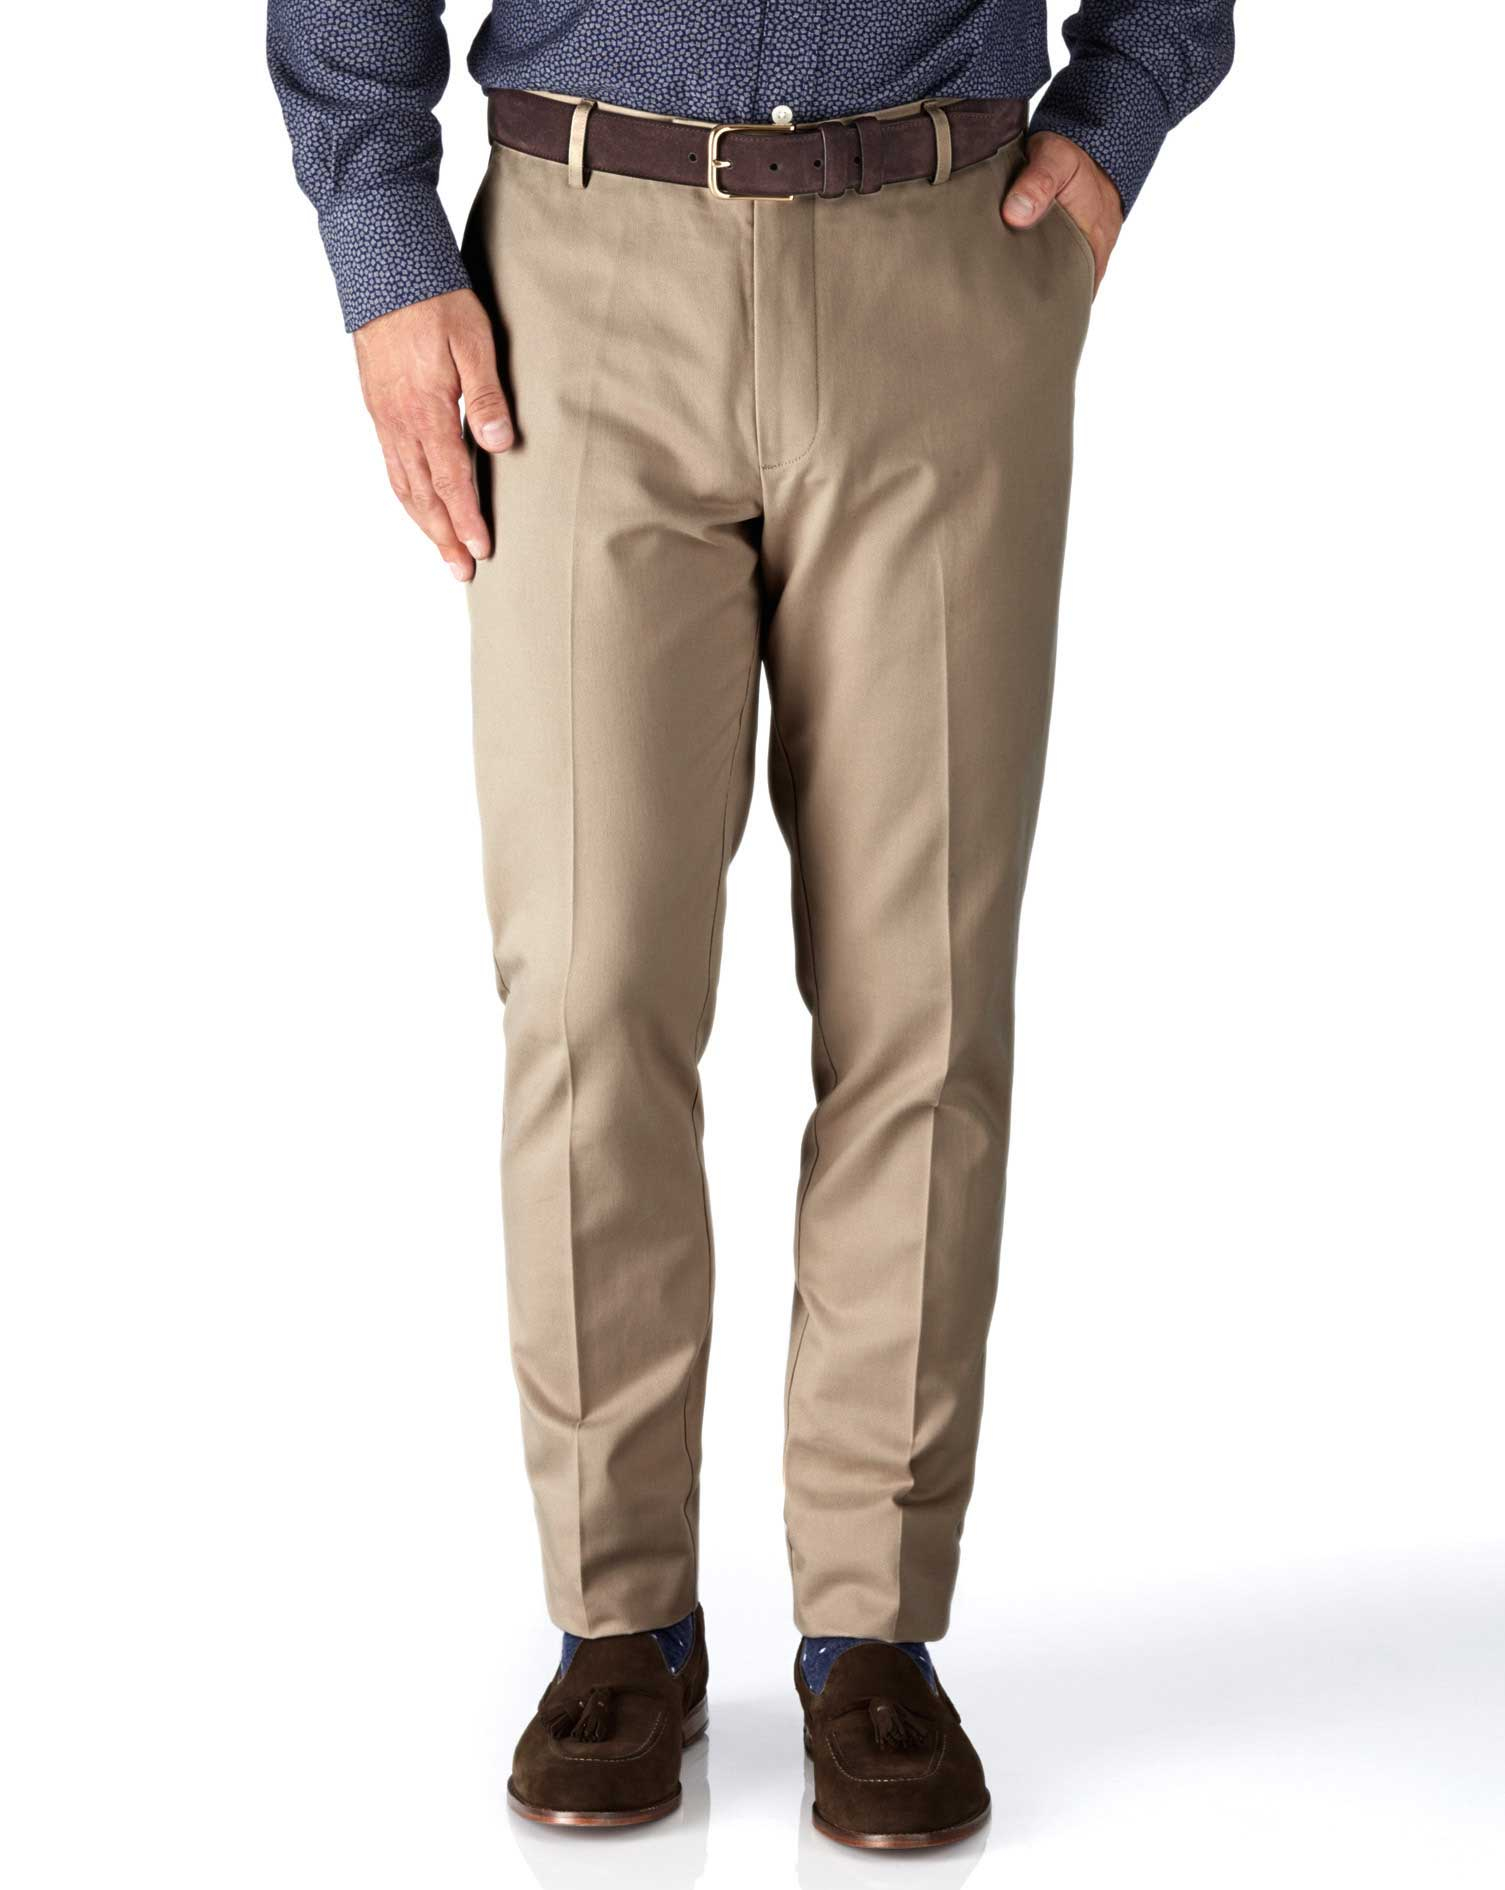 Stone Slim Fit Flat Front Non-Iron Cotton Chino Trousers Size W36 L30 by Charles Tyrwhitt